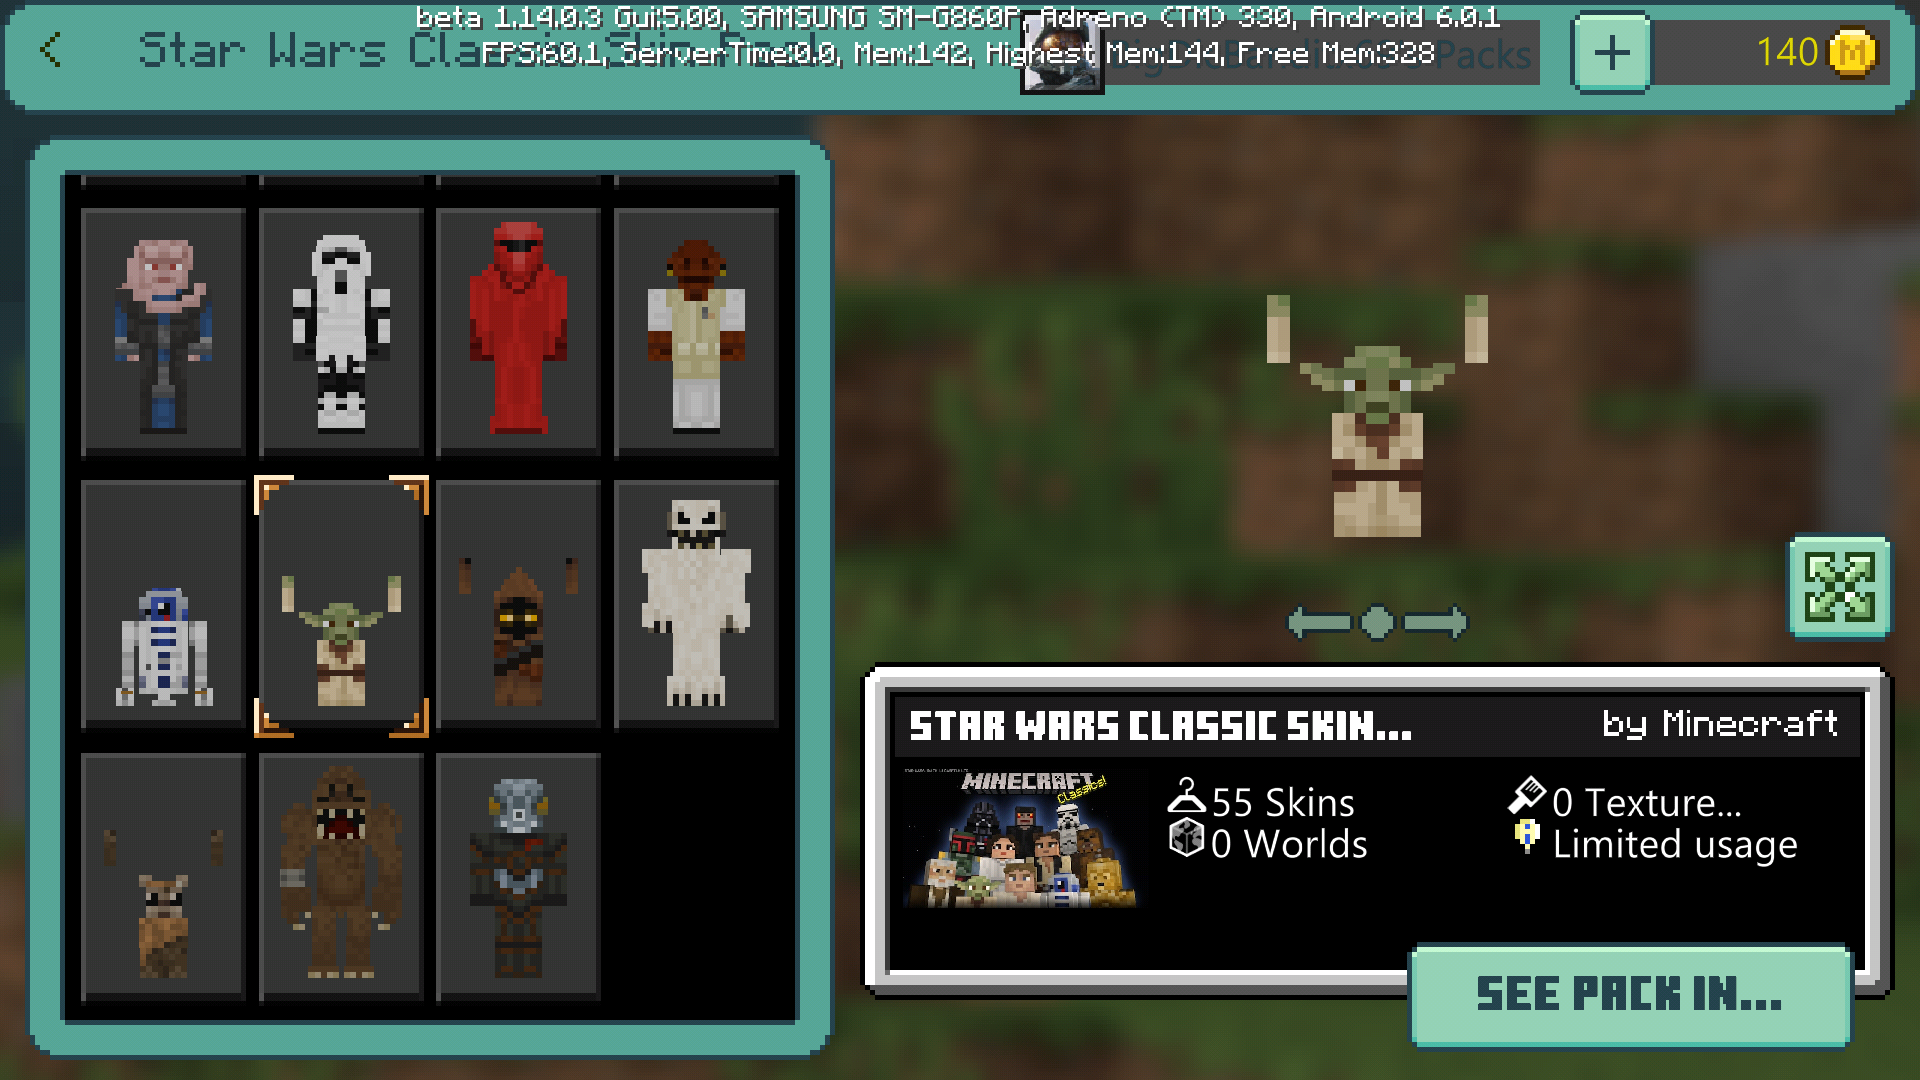 Bds 1623 Some Of The Skins In The Star Wars Classic Pack Are Messed Up And They Have Messed Up Flouting Arms Please Help I Paid Money For This Skin Pack Jira